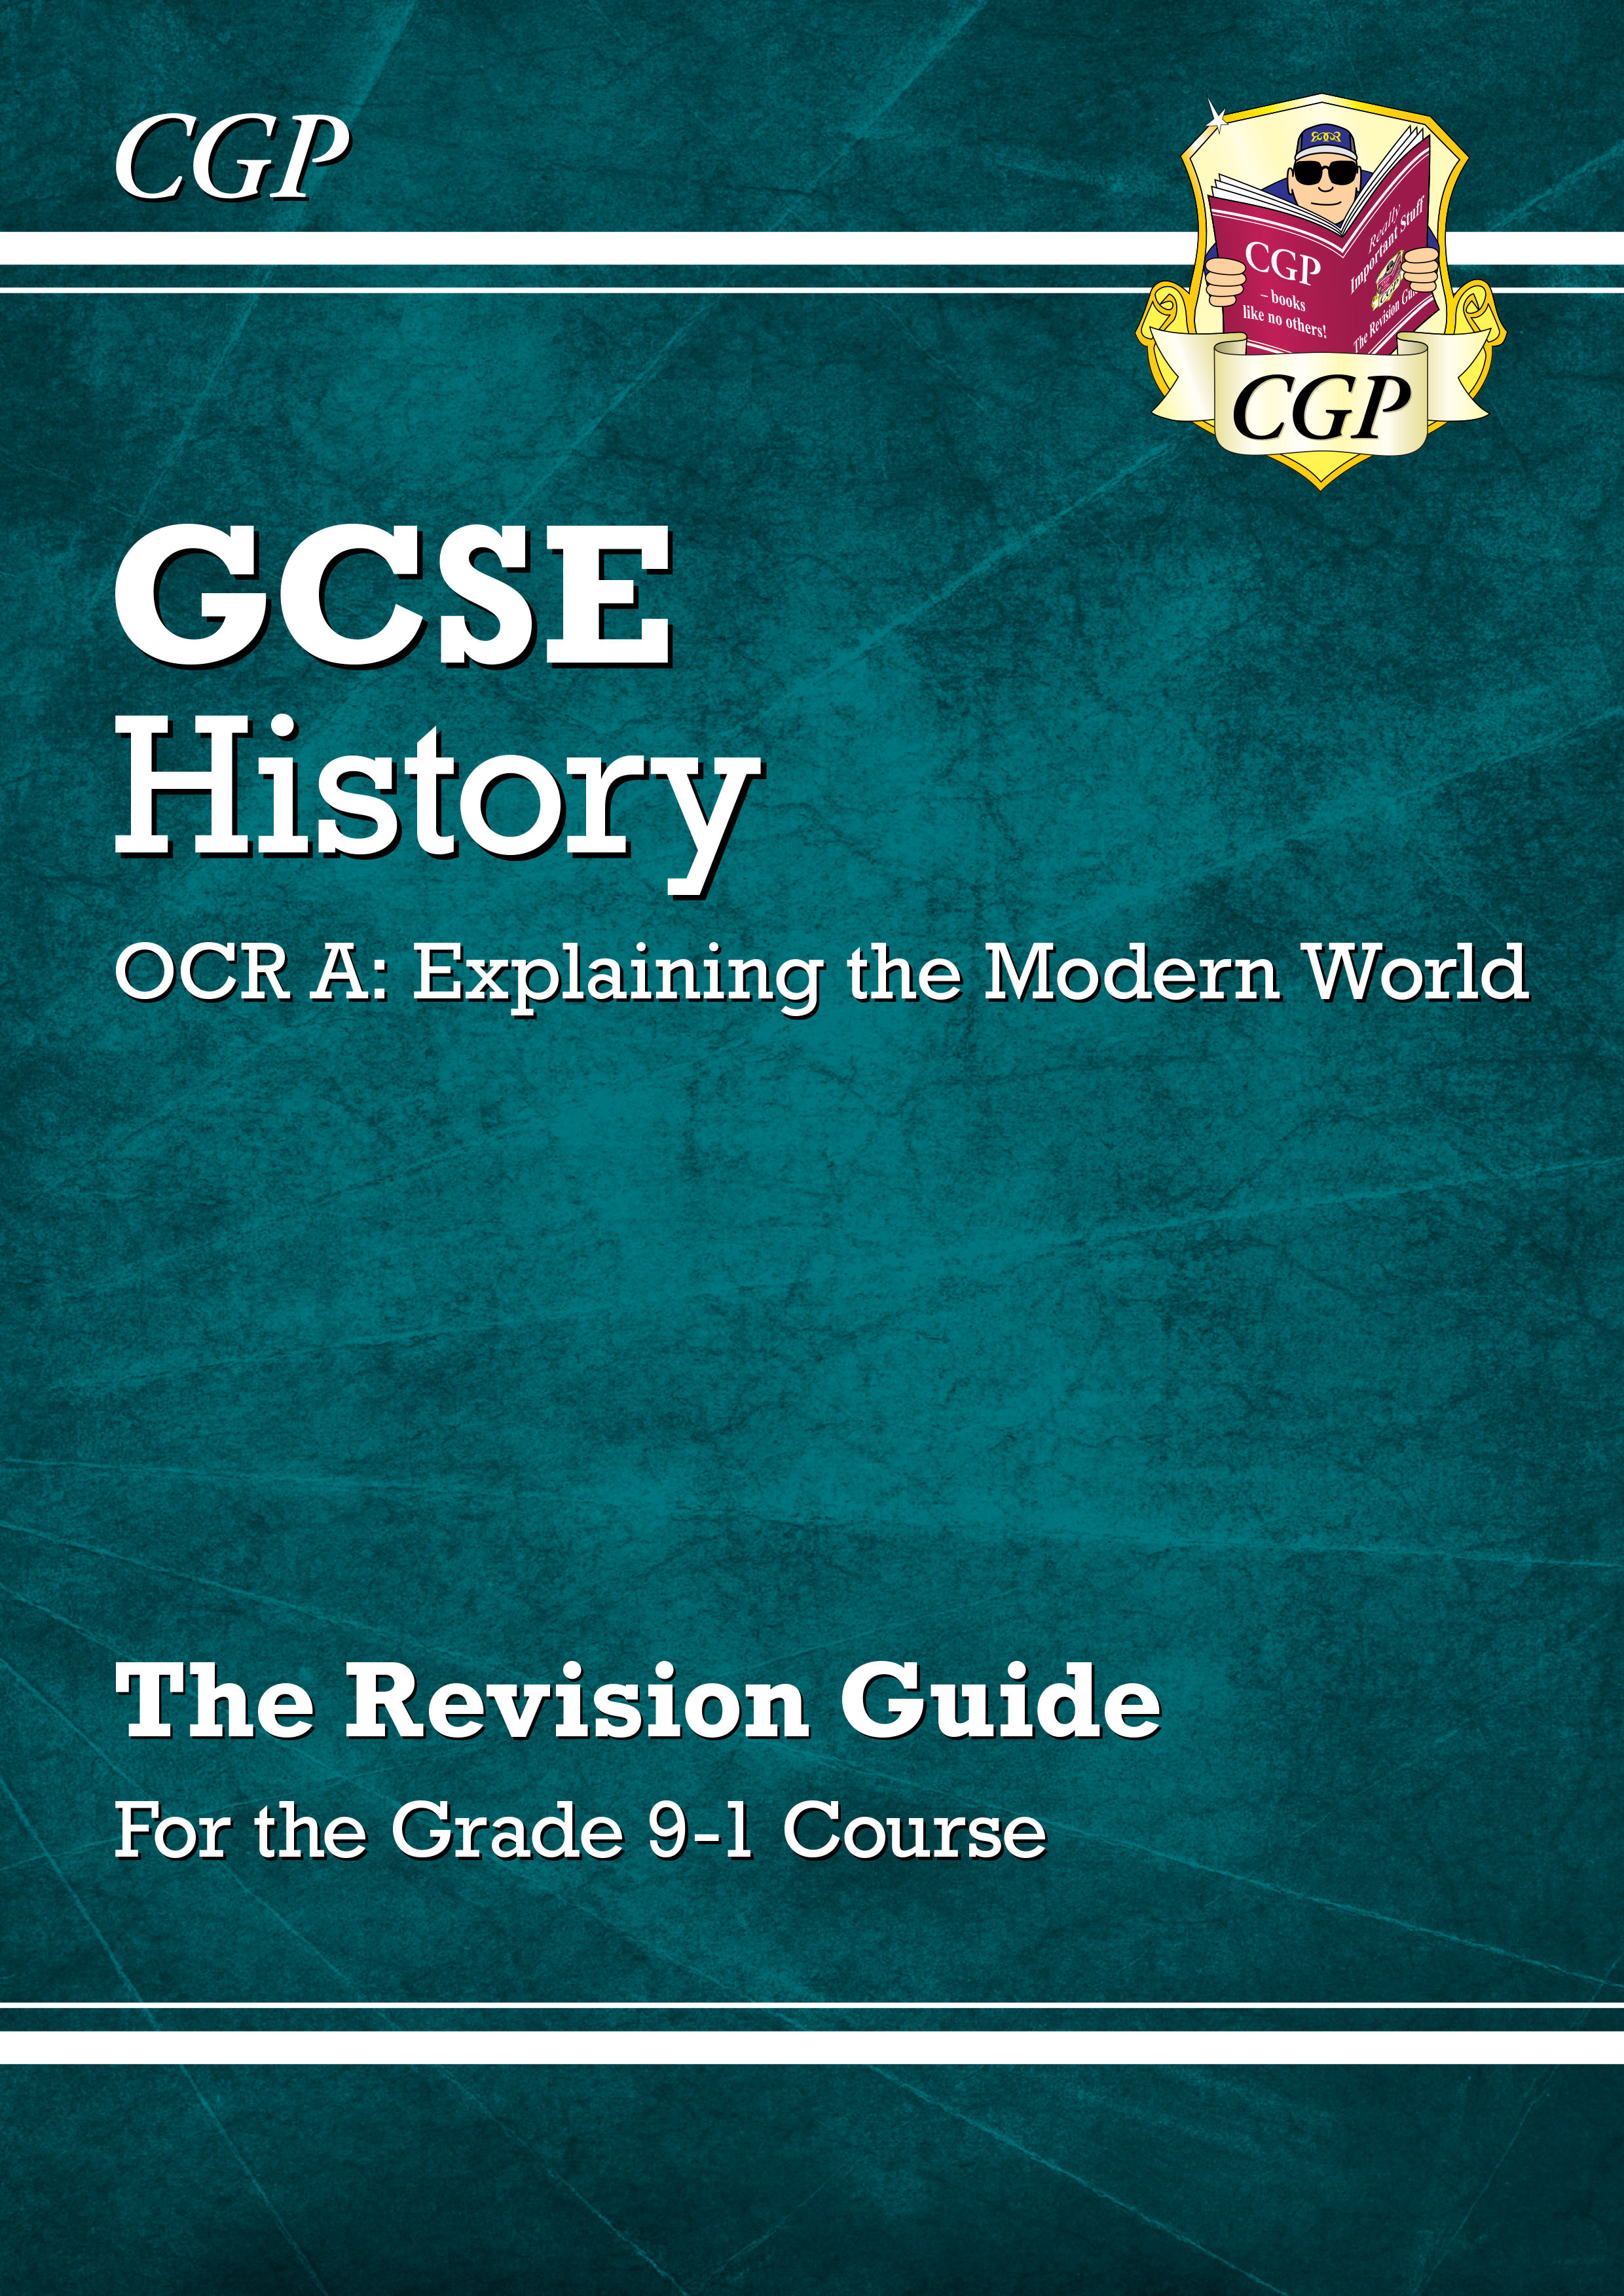 HWRR44DK - New GCSE History OCR A: Explaining the Modern World Revision Guide - for the Grade 9-1 Co